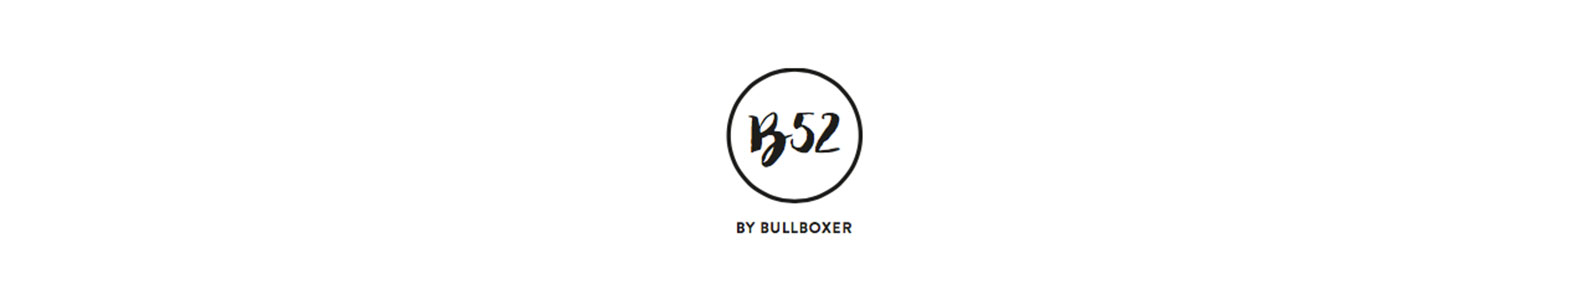 B52 by Bullboxer brand header image